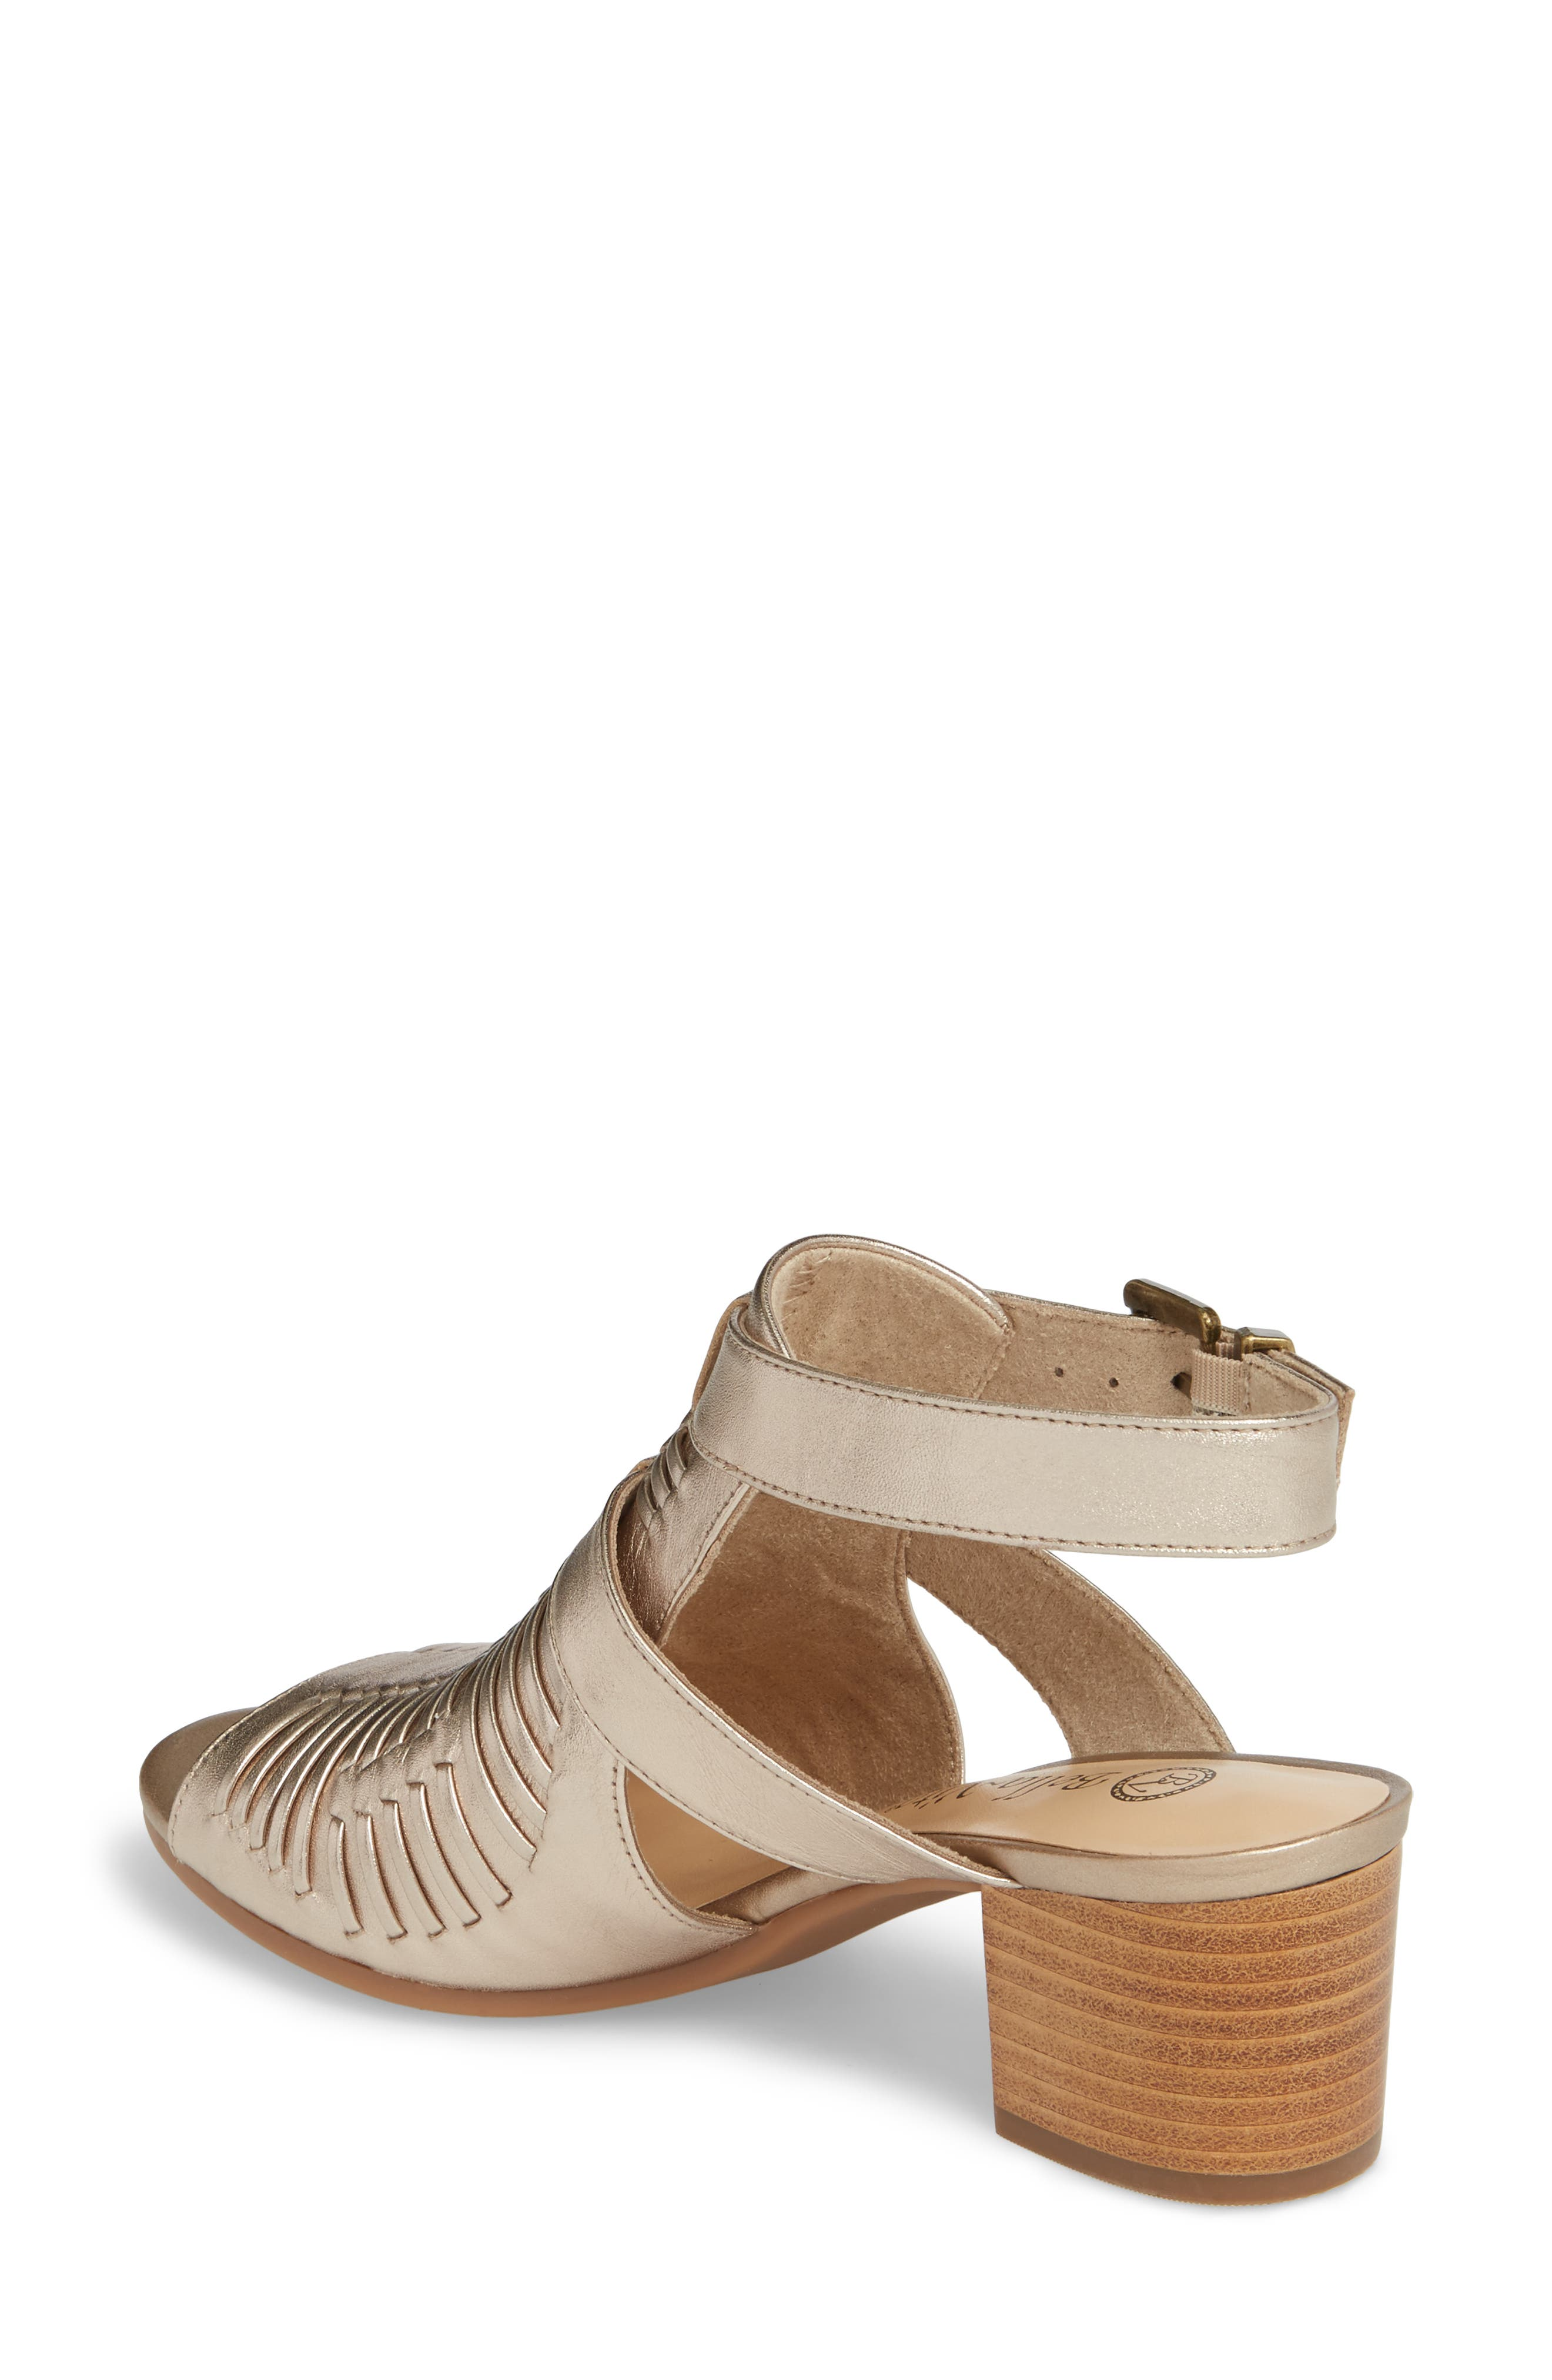 Finley Ankle Strap Sandal,                             Alternate thumbnail 2, color,                             Champagne Fabric